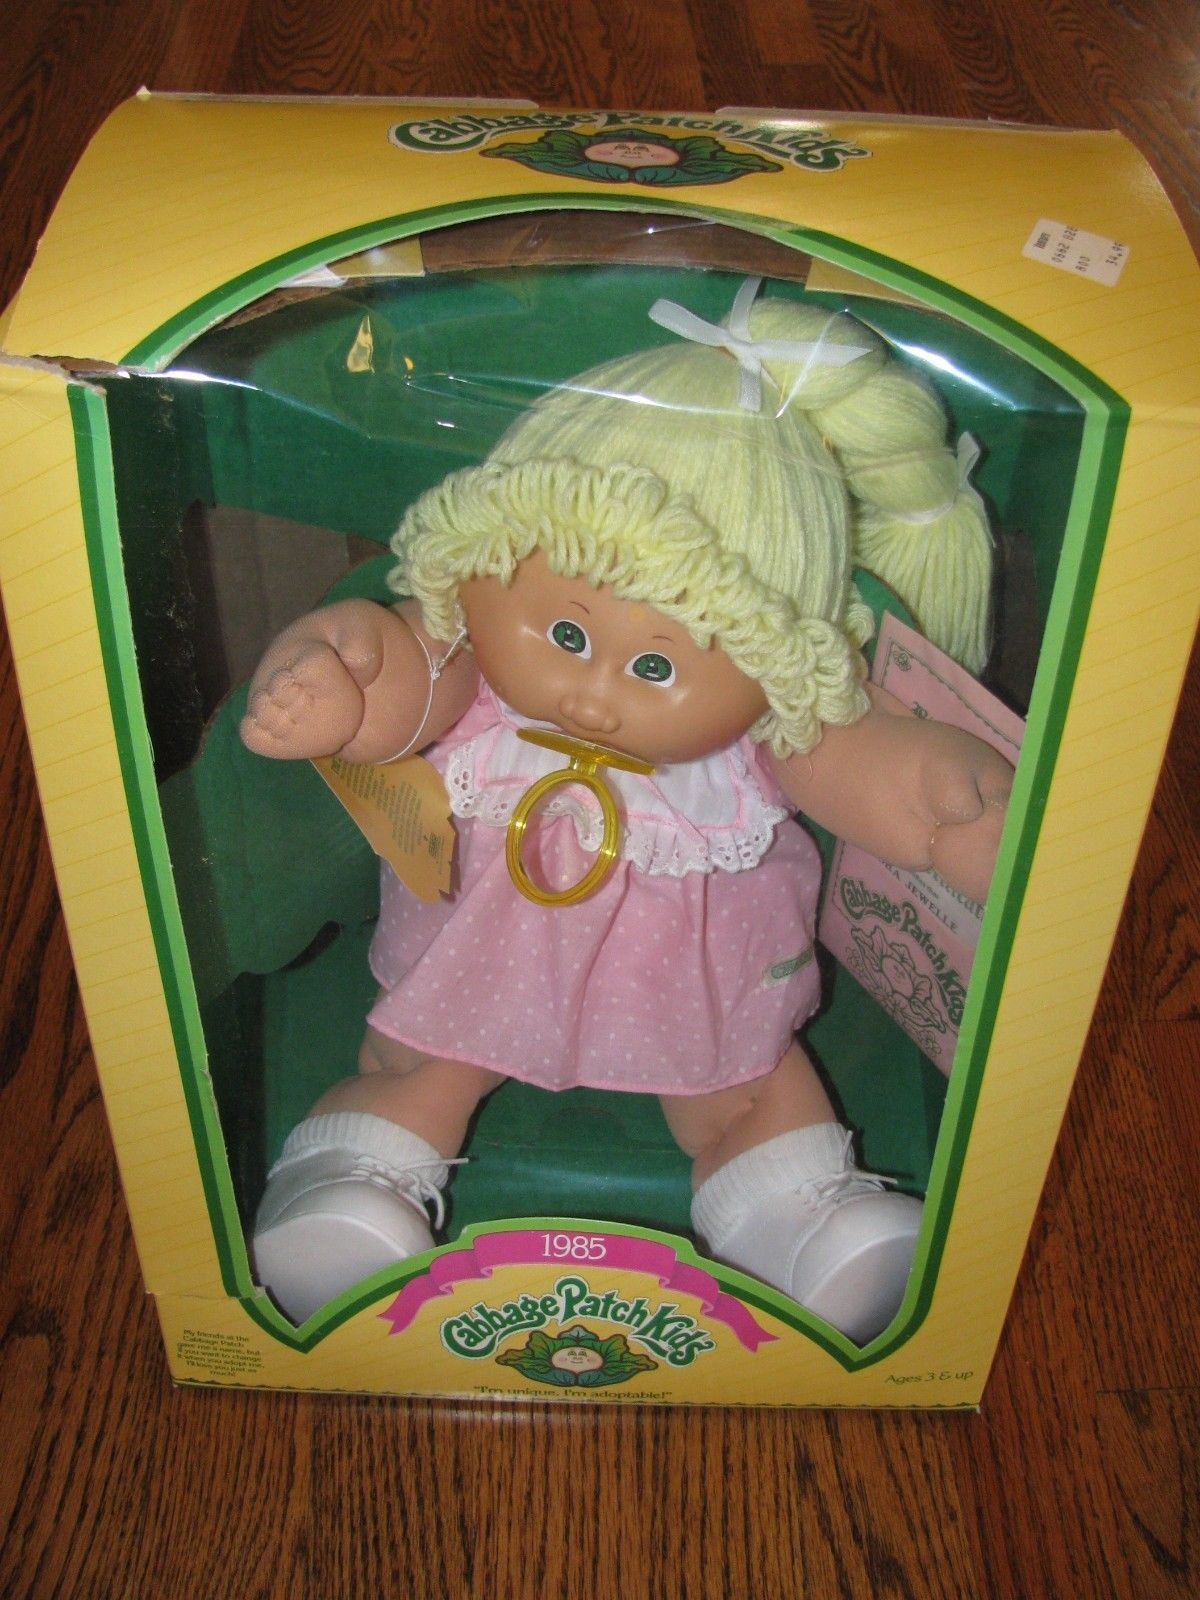 Cabbage Patch Kids Girl Doll Cpk Red Hair Blue Eyes Pacifier Outfit Clothes Ebay Cabbage Patch Dolls Cabbage Patch Kids Cabbage Patch Babies